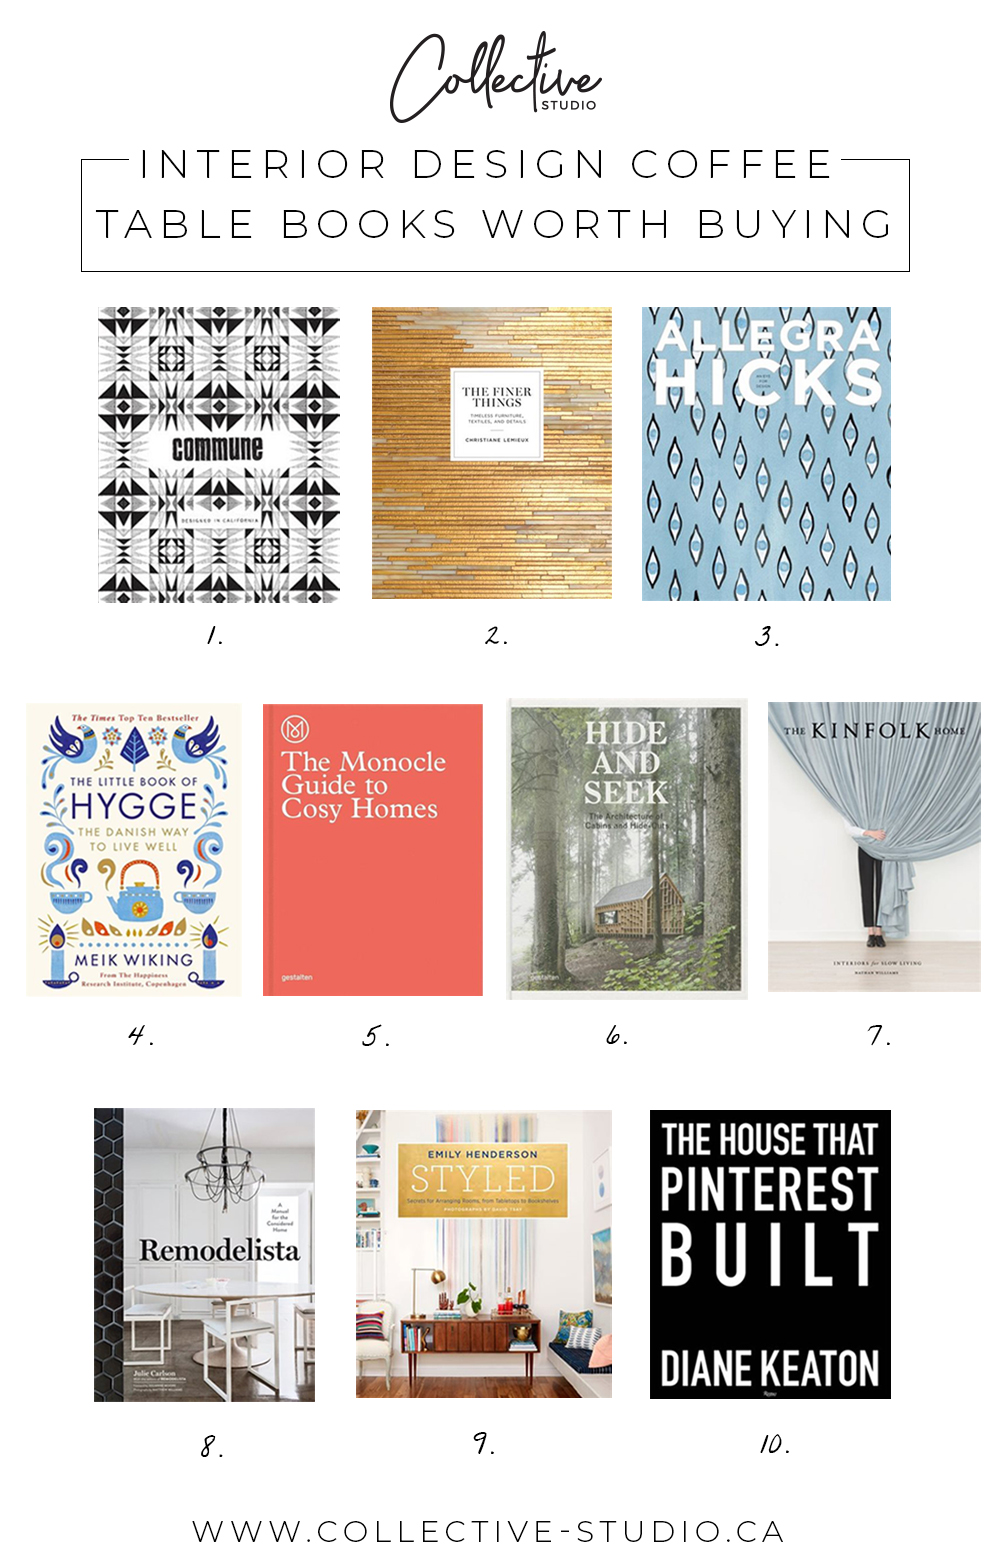 10 Things: Interior Design Coffee Table Books Worth Buying